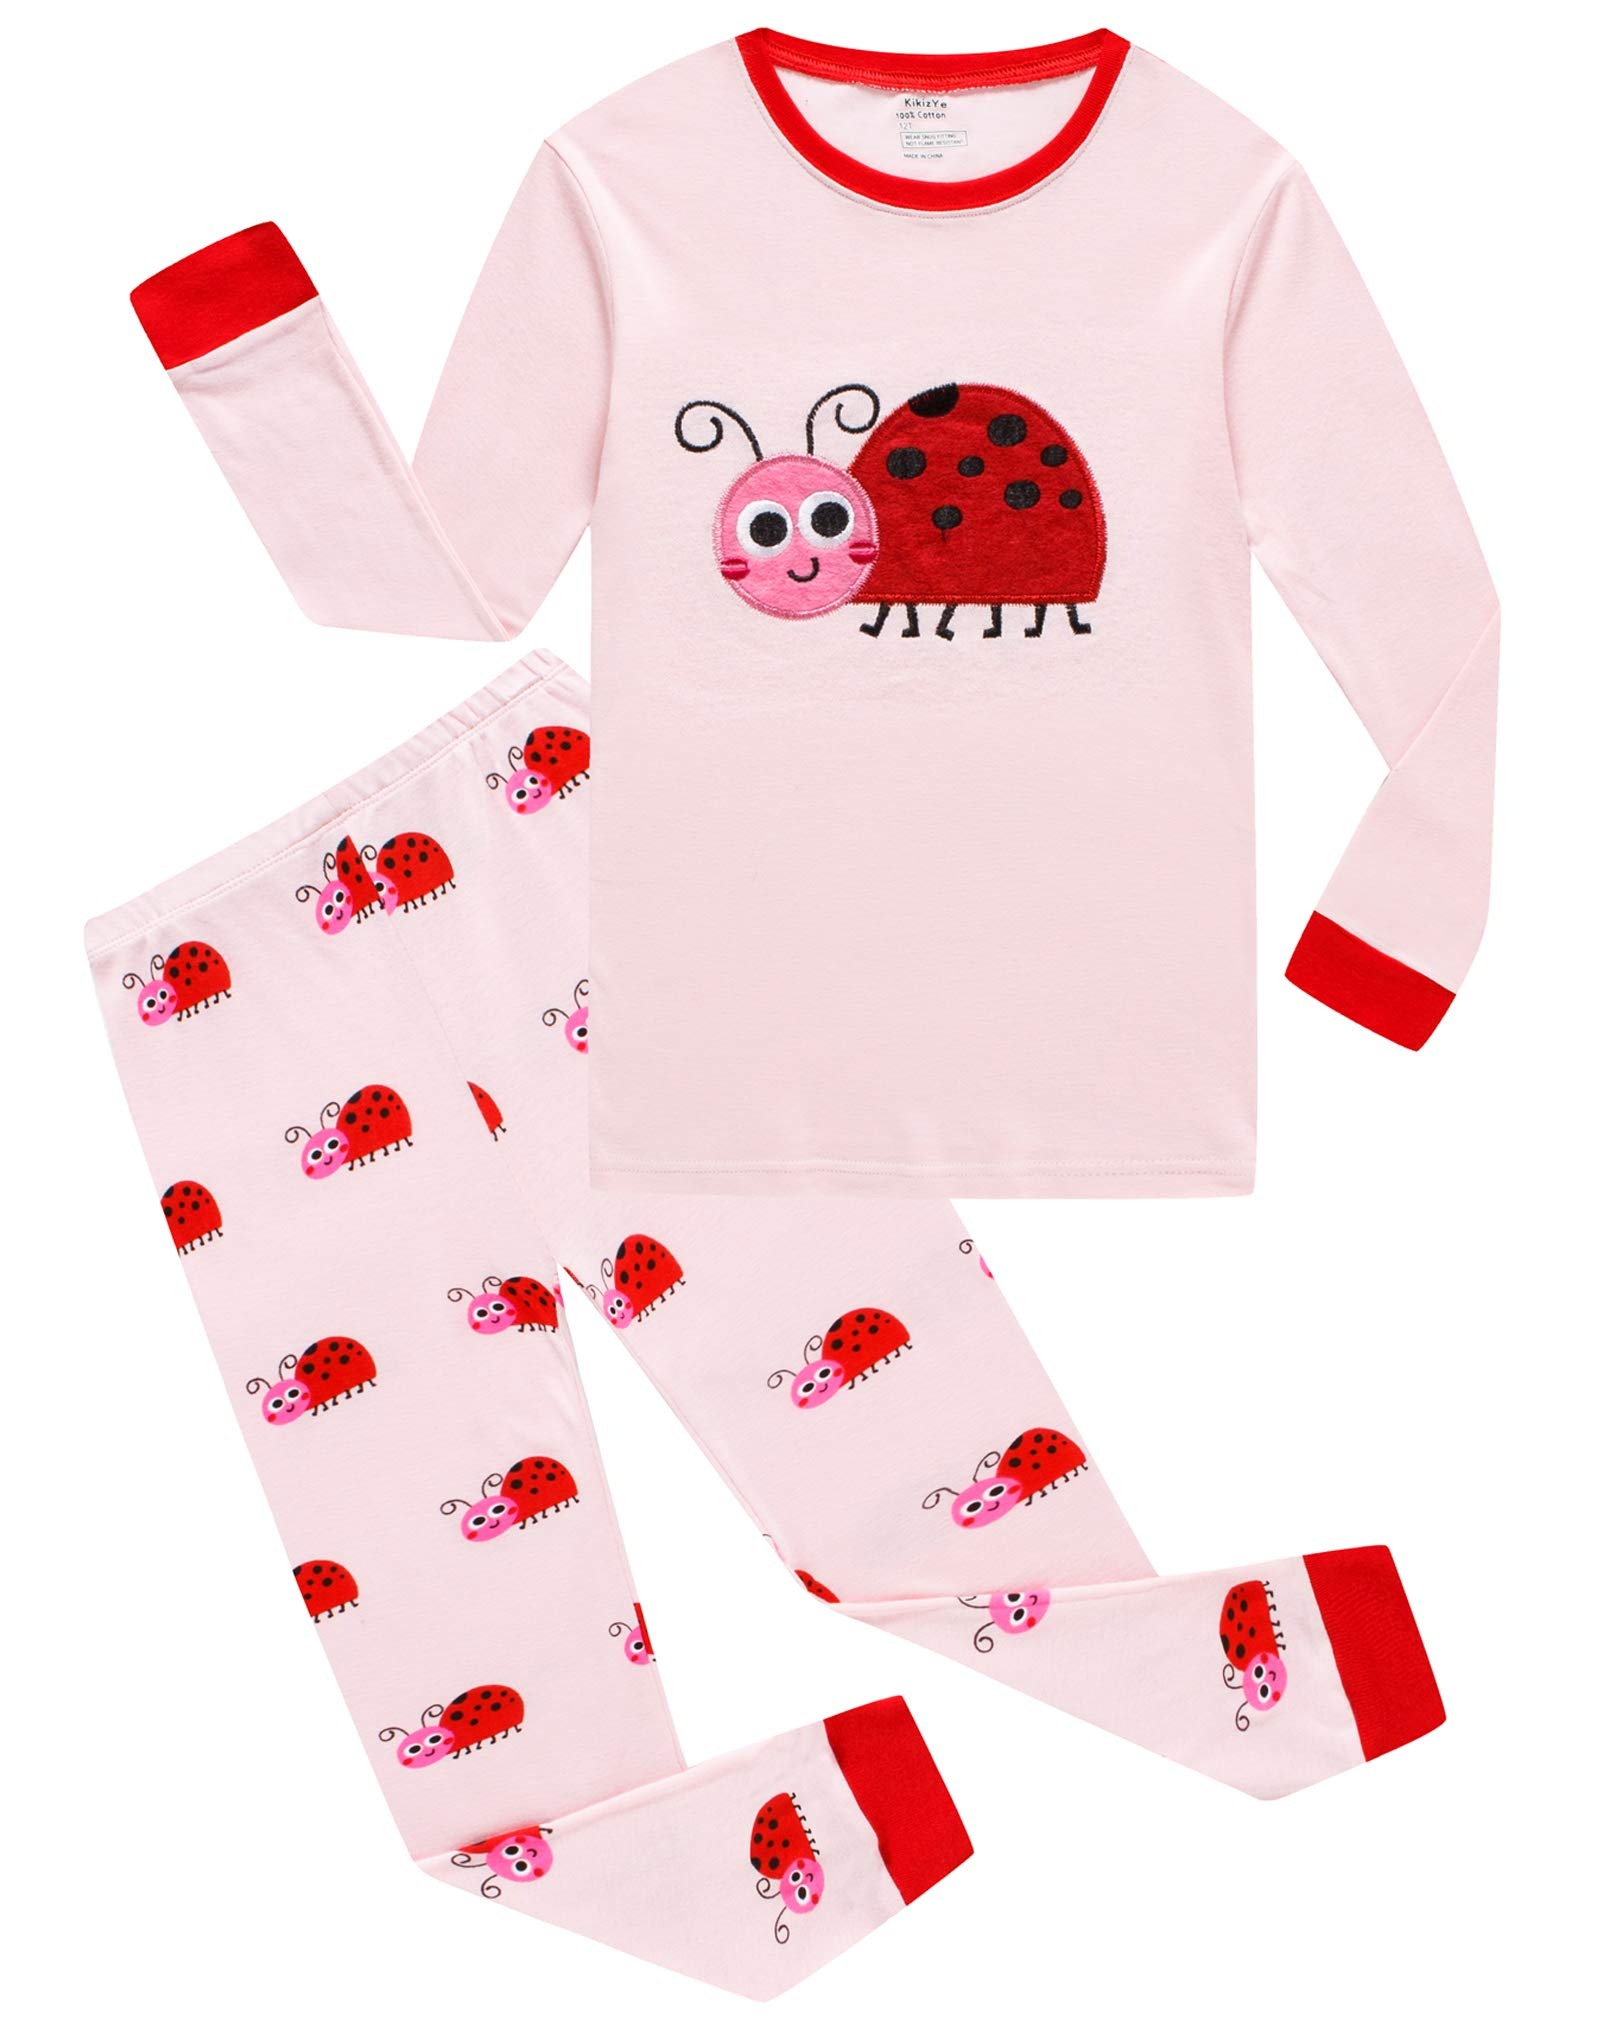 KikizYe Ladybug Big Girls Long Sleeve Pajama Sets 100% Cotton Pjs Size 12